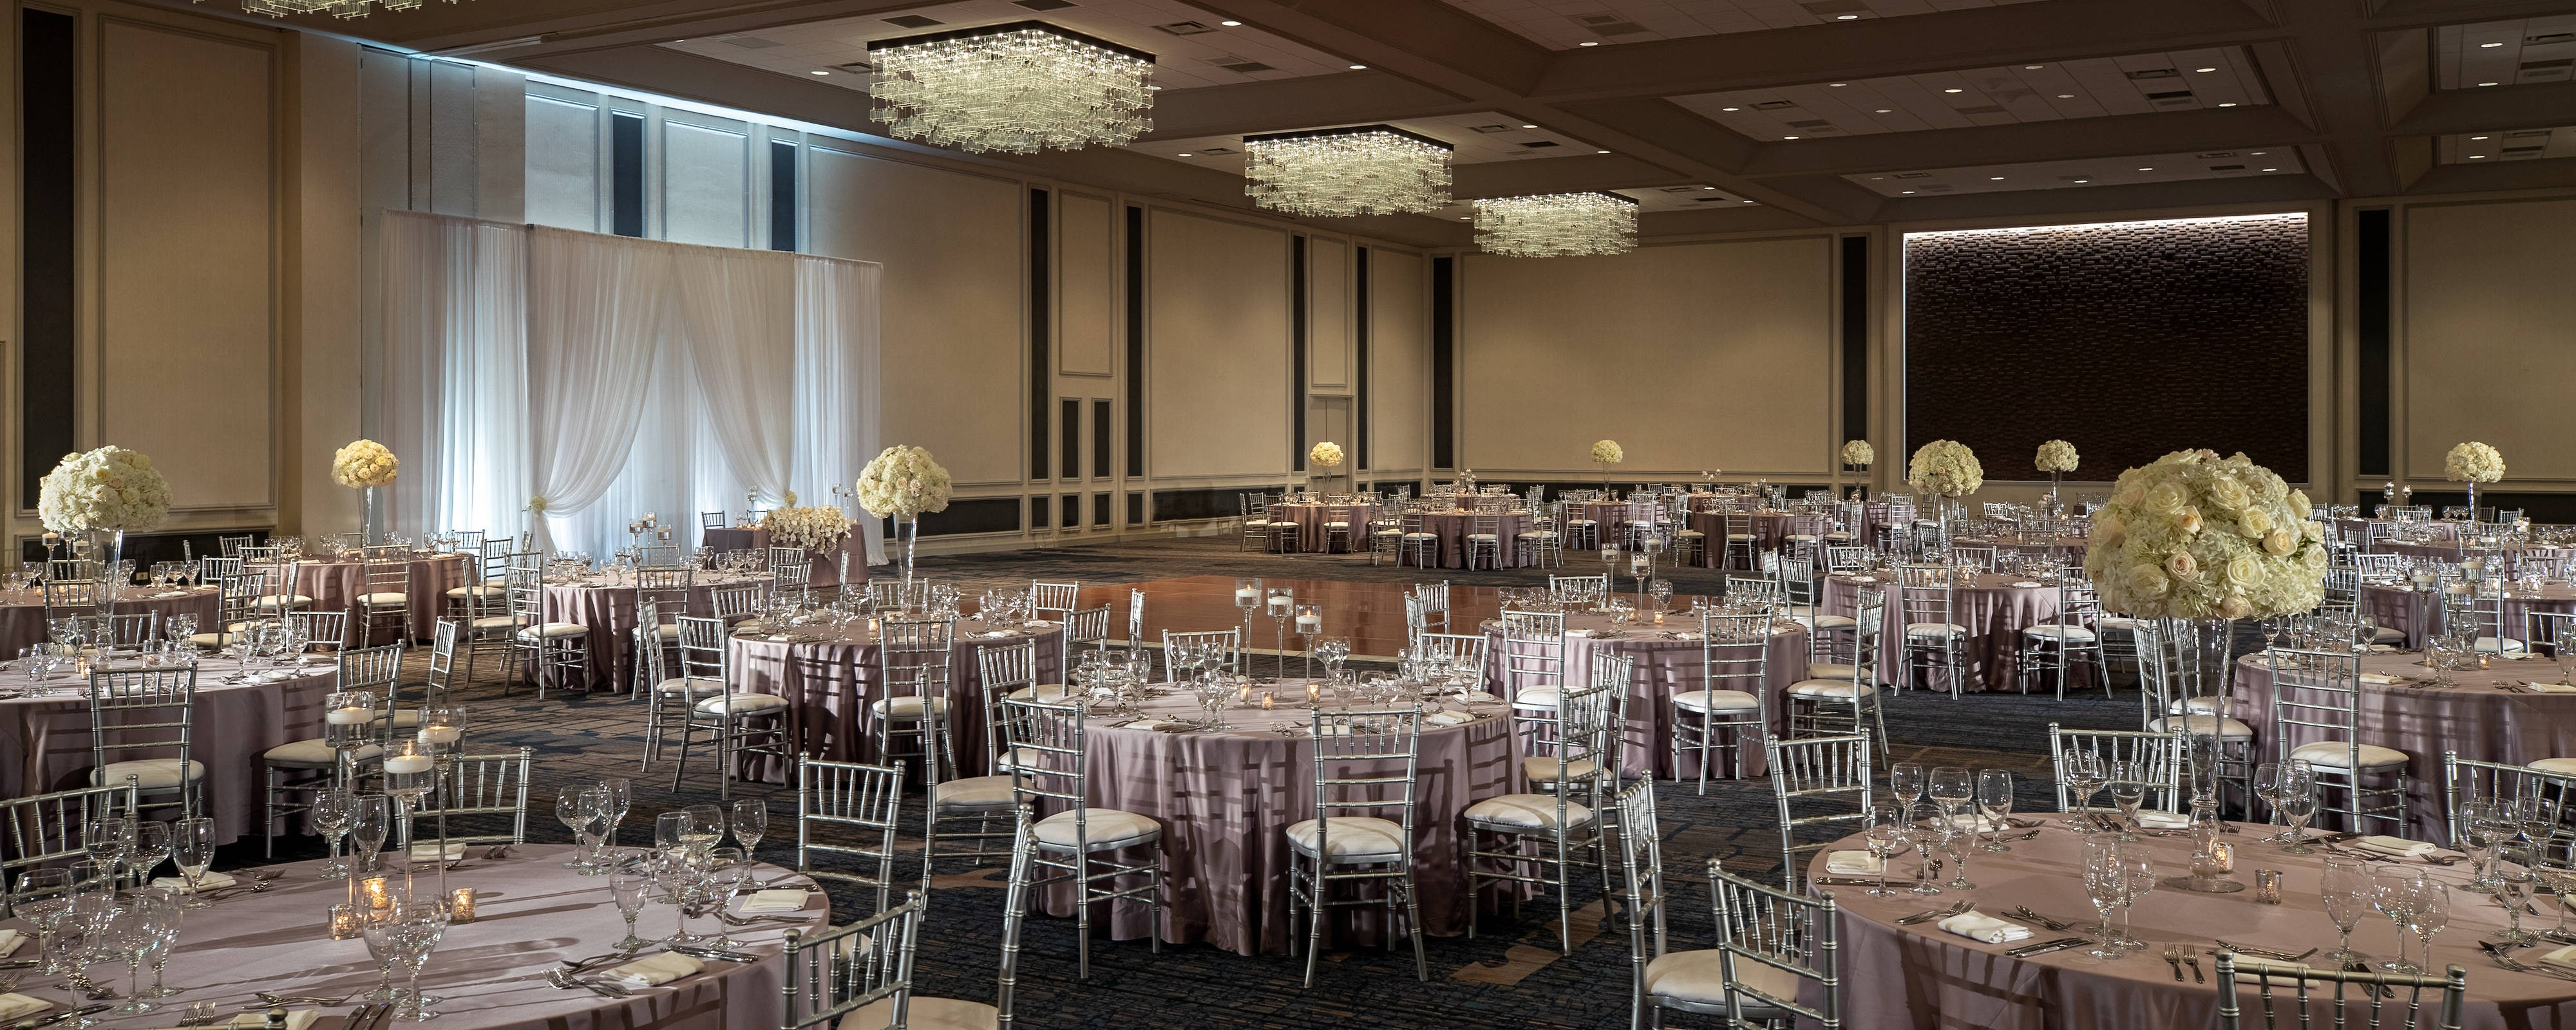 chicago wedding chicago marriott downtown magnificent mile. Black Bedroom Furniture Sets. Home Design Ideas